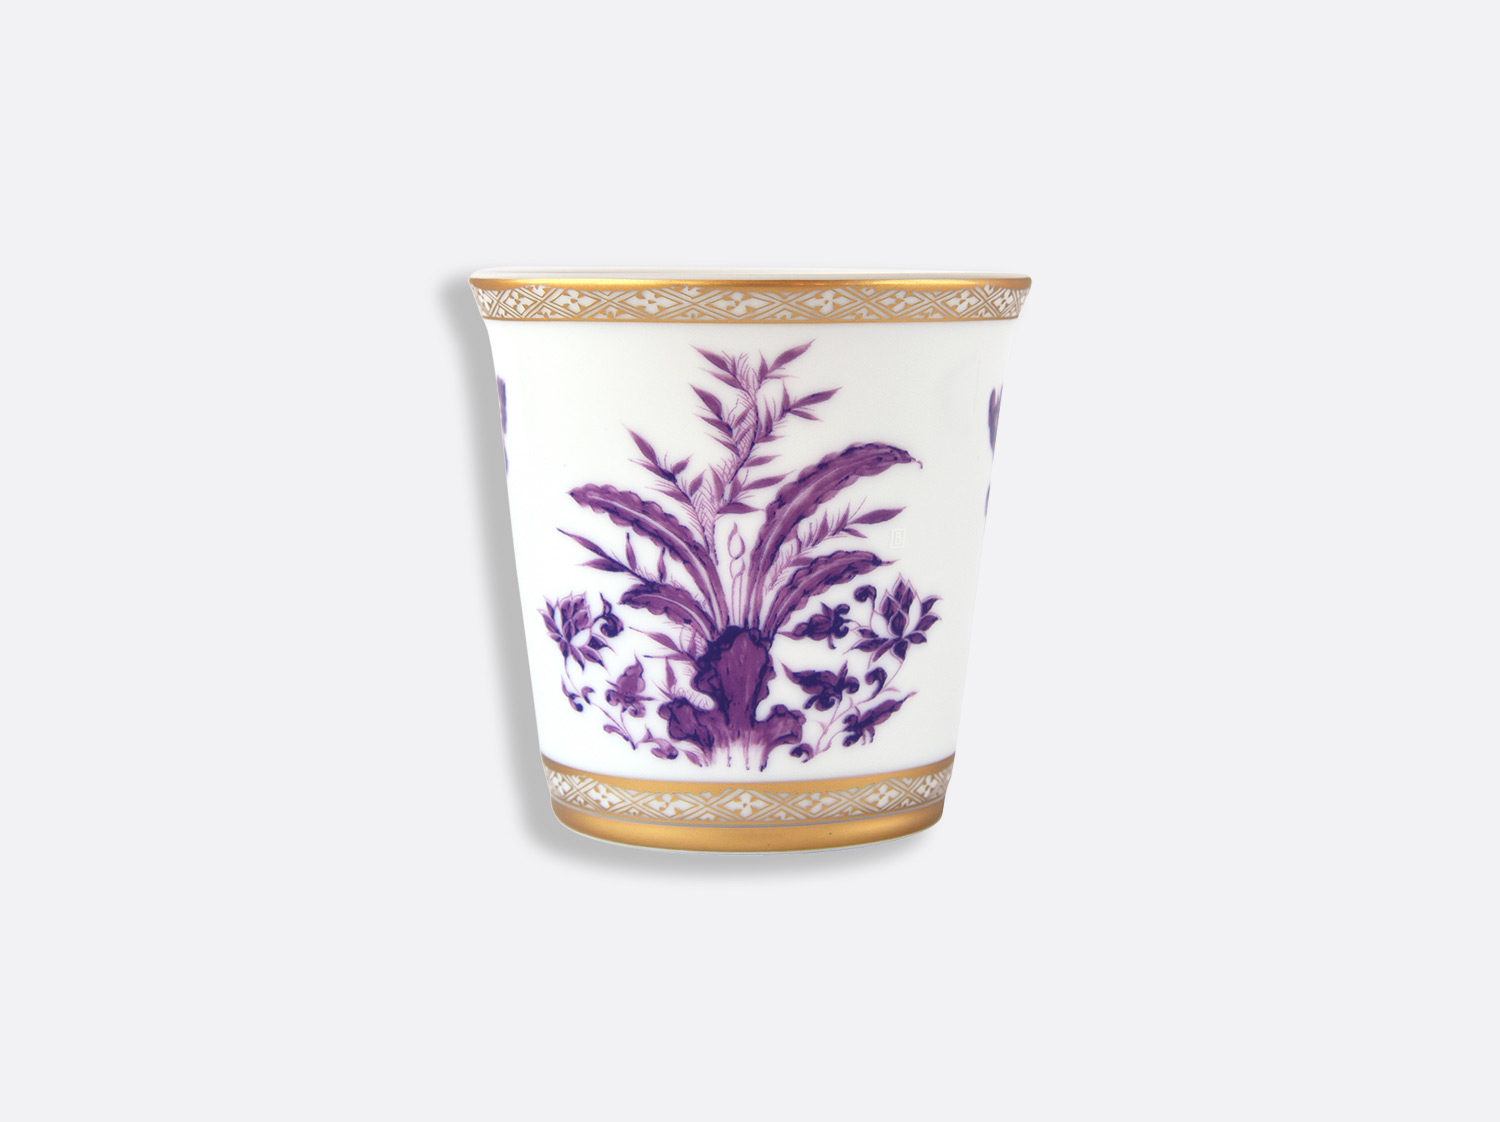 Pot 9 cm + bougie parfumée 200g en porcelaine de la collection PRUNUS Bernardaud